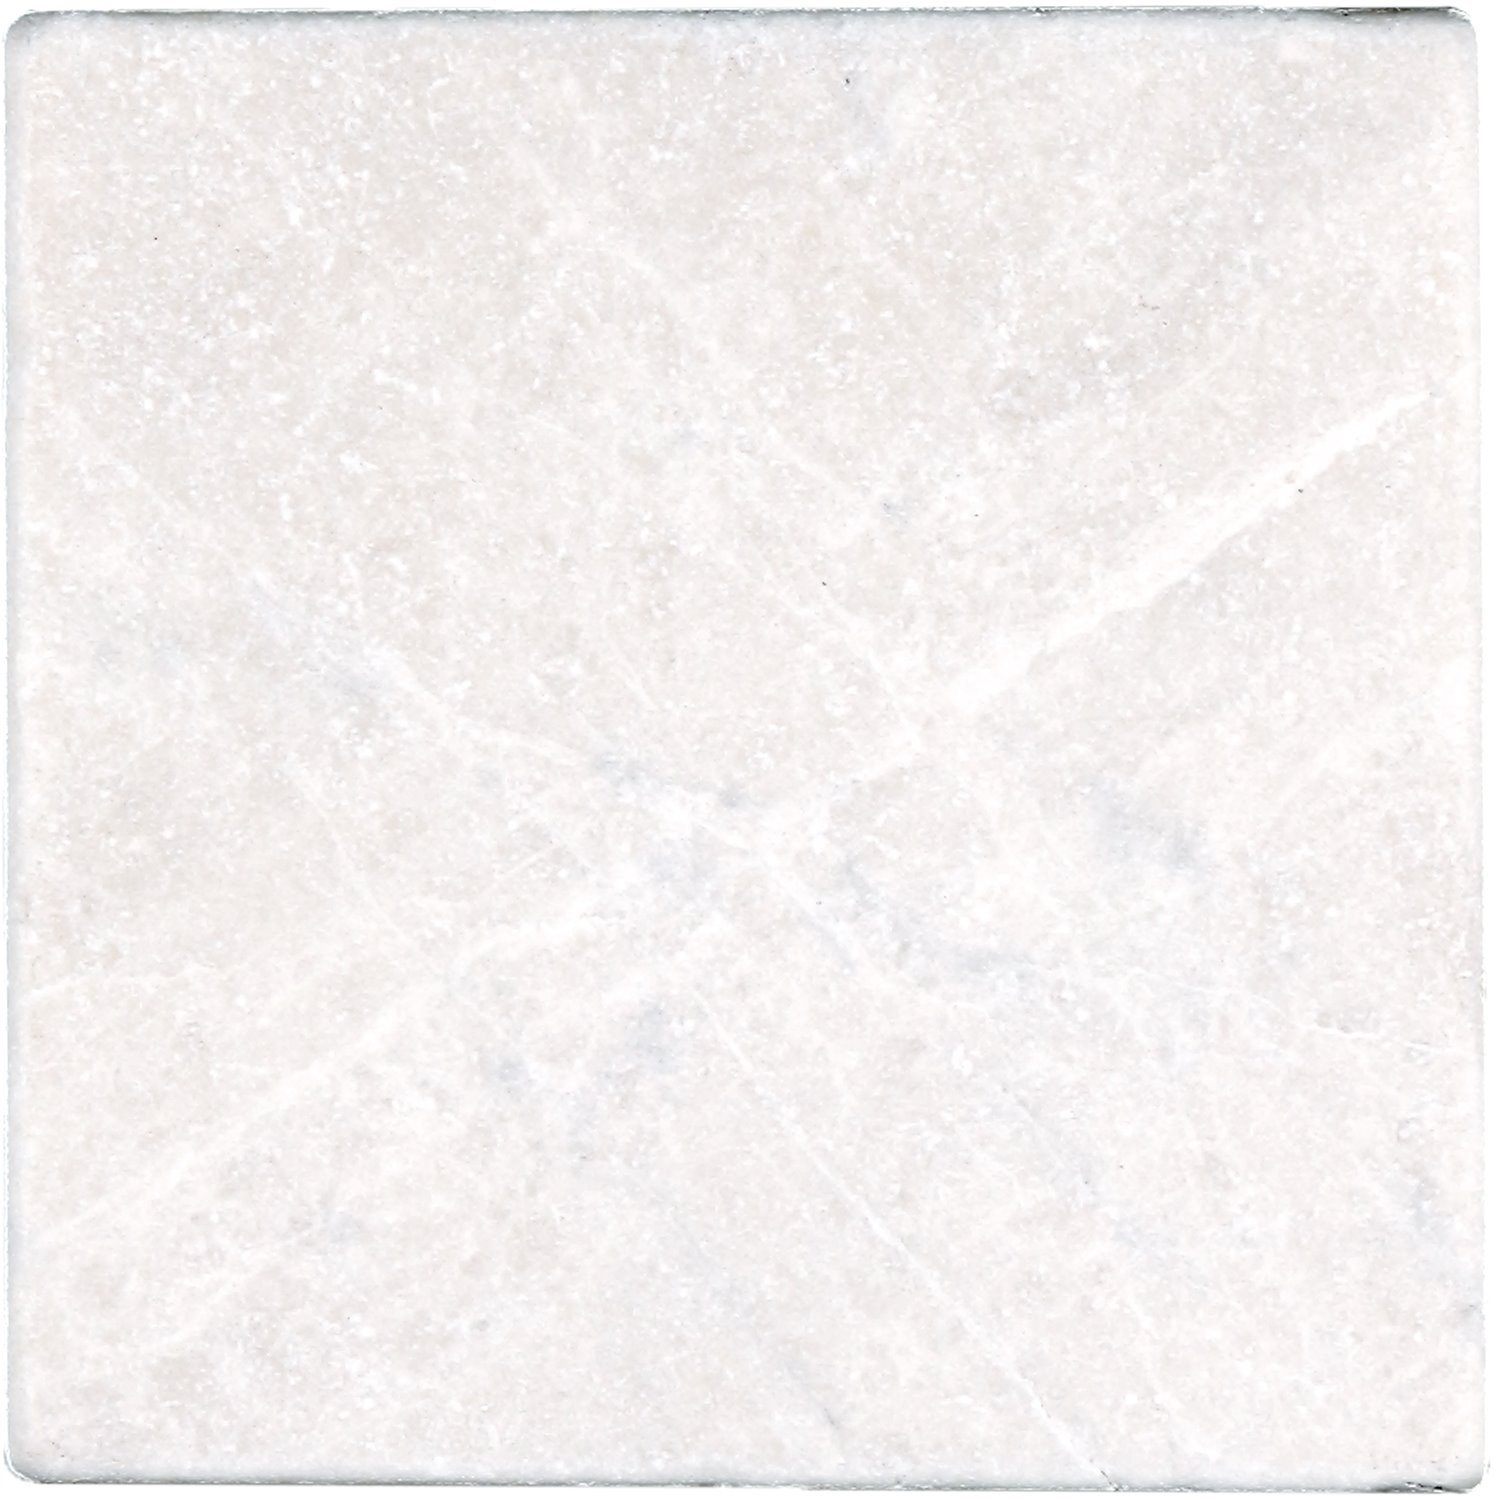 Marmor fliesen beige boticino 30x30x1cm tm33456 for Fliesen beige